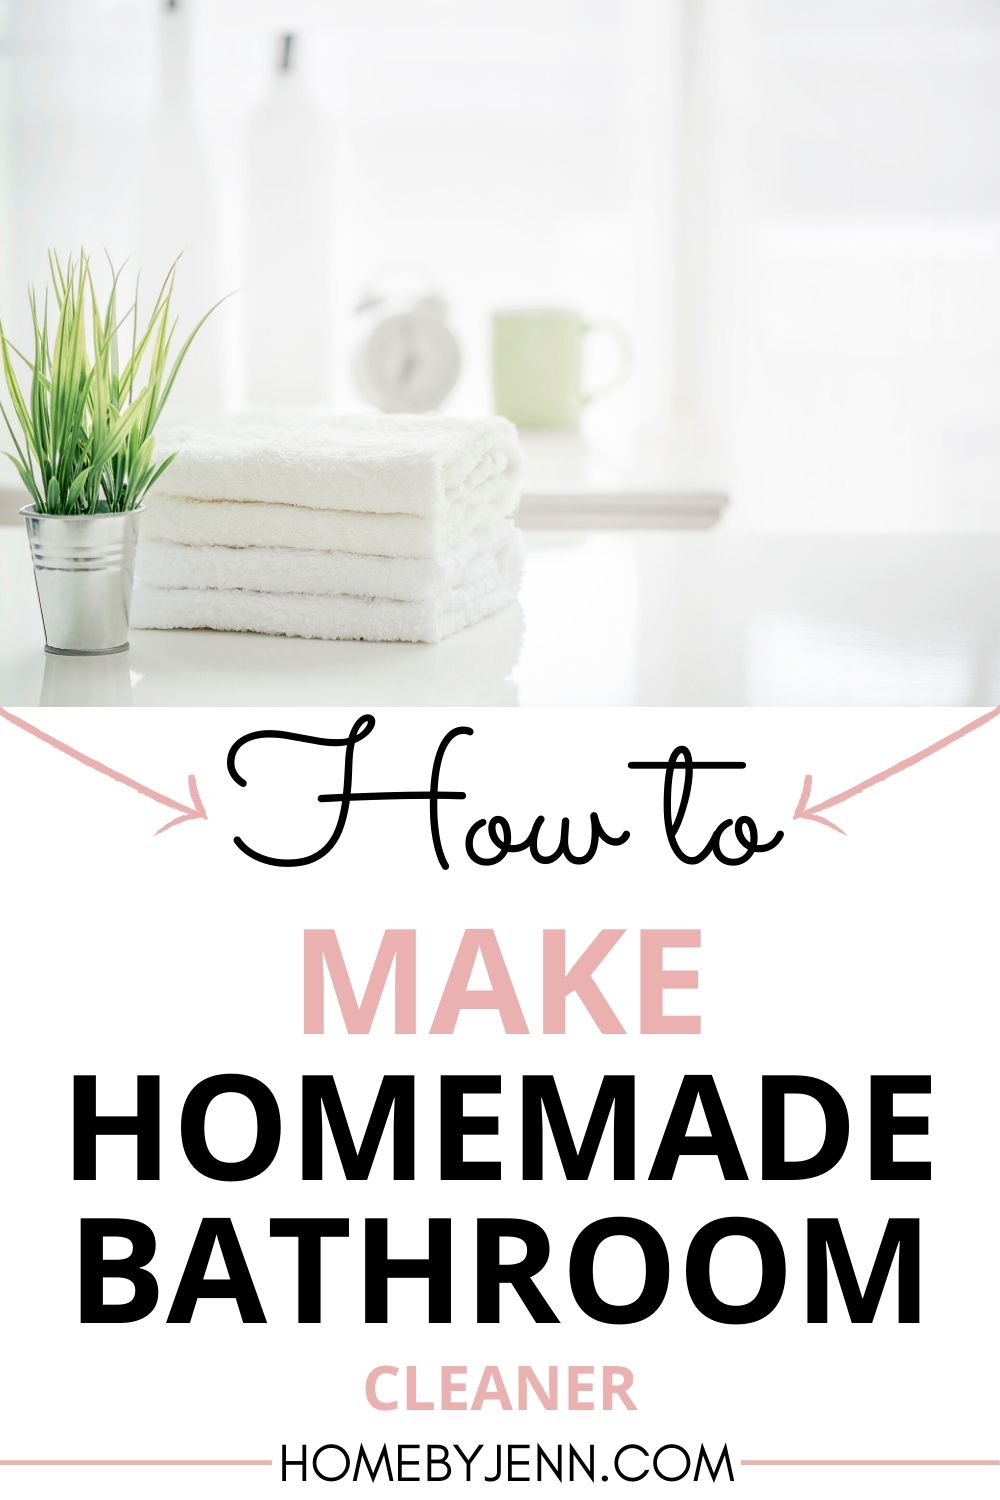 It's time to ditch the store-bought cleaners and instead make your own homemade bathroom cleaner. You'll love the ease and cost!#cleaning #cleaner #diycleaner #naturalcleaning #diy #cleanhome #bathroom #bathroomcleaner via @homebyjenn